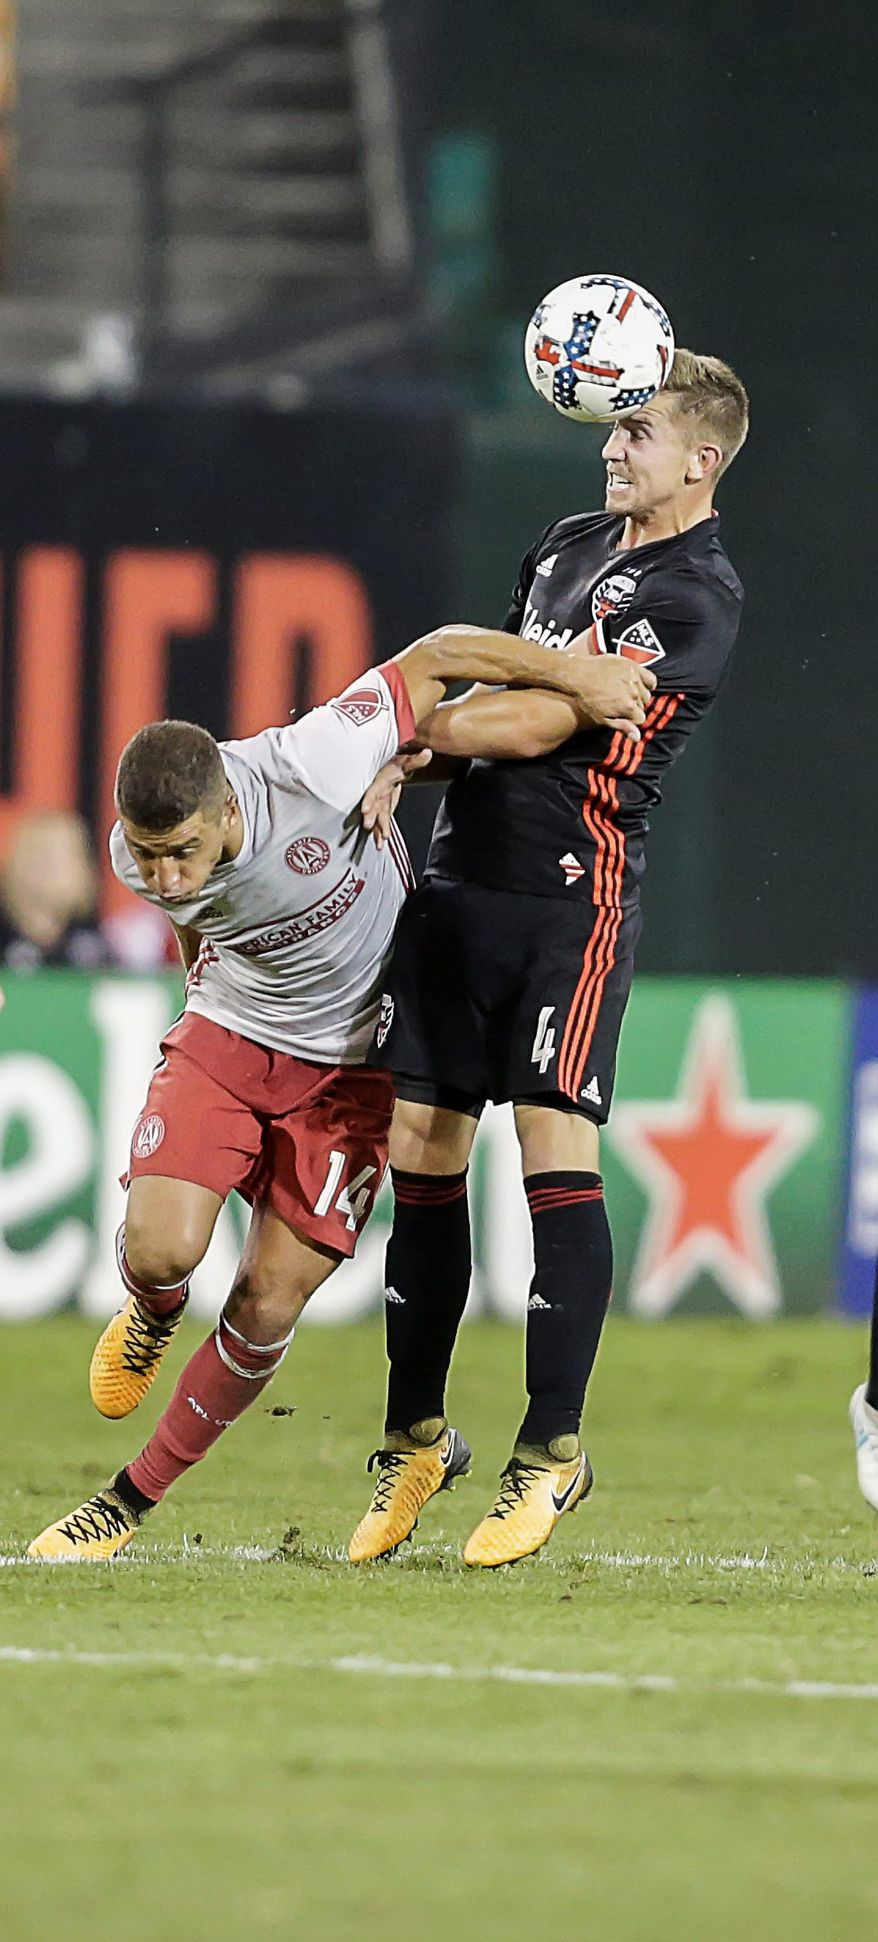 D.C. United midfielder Russell Canouse's (4) shot created the decisive own goal in a win over Atlanta United on Wednesday. (Associated Press)